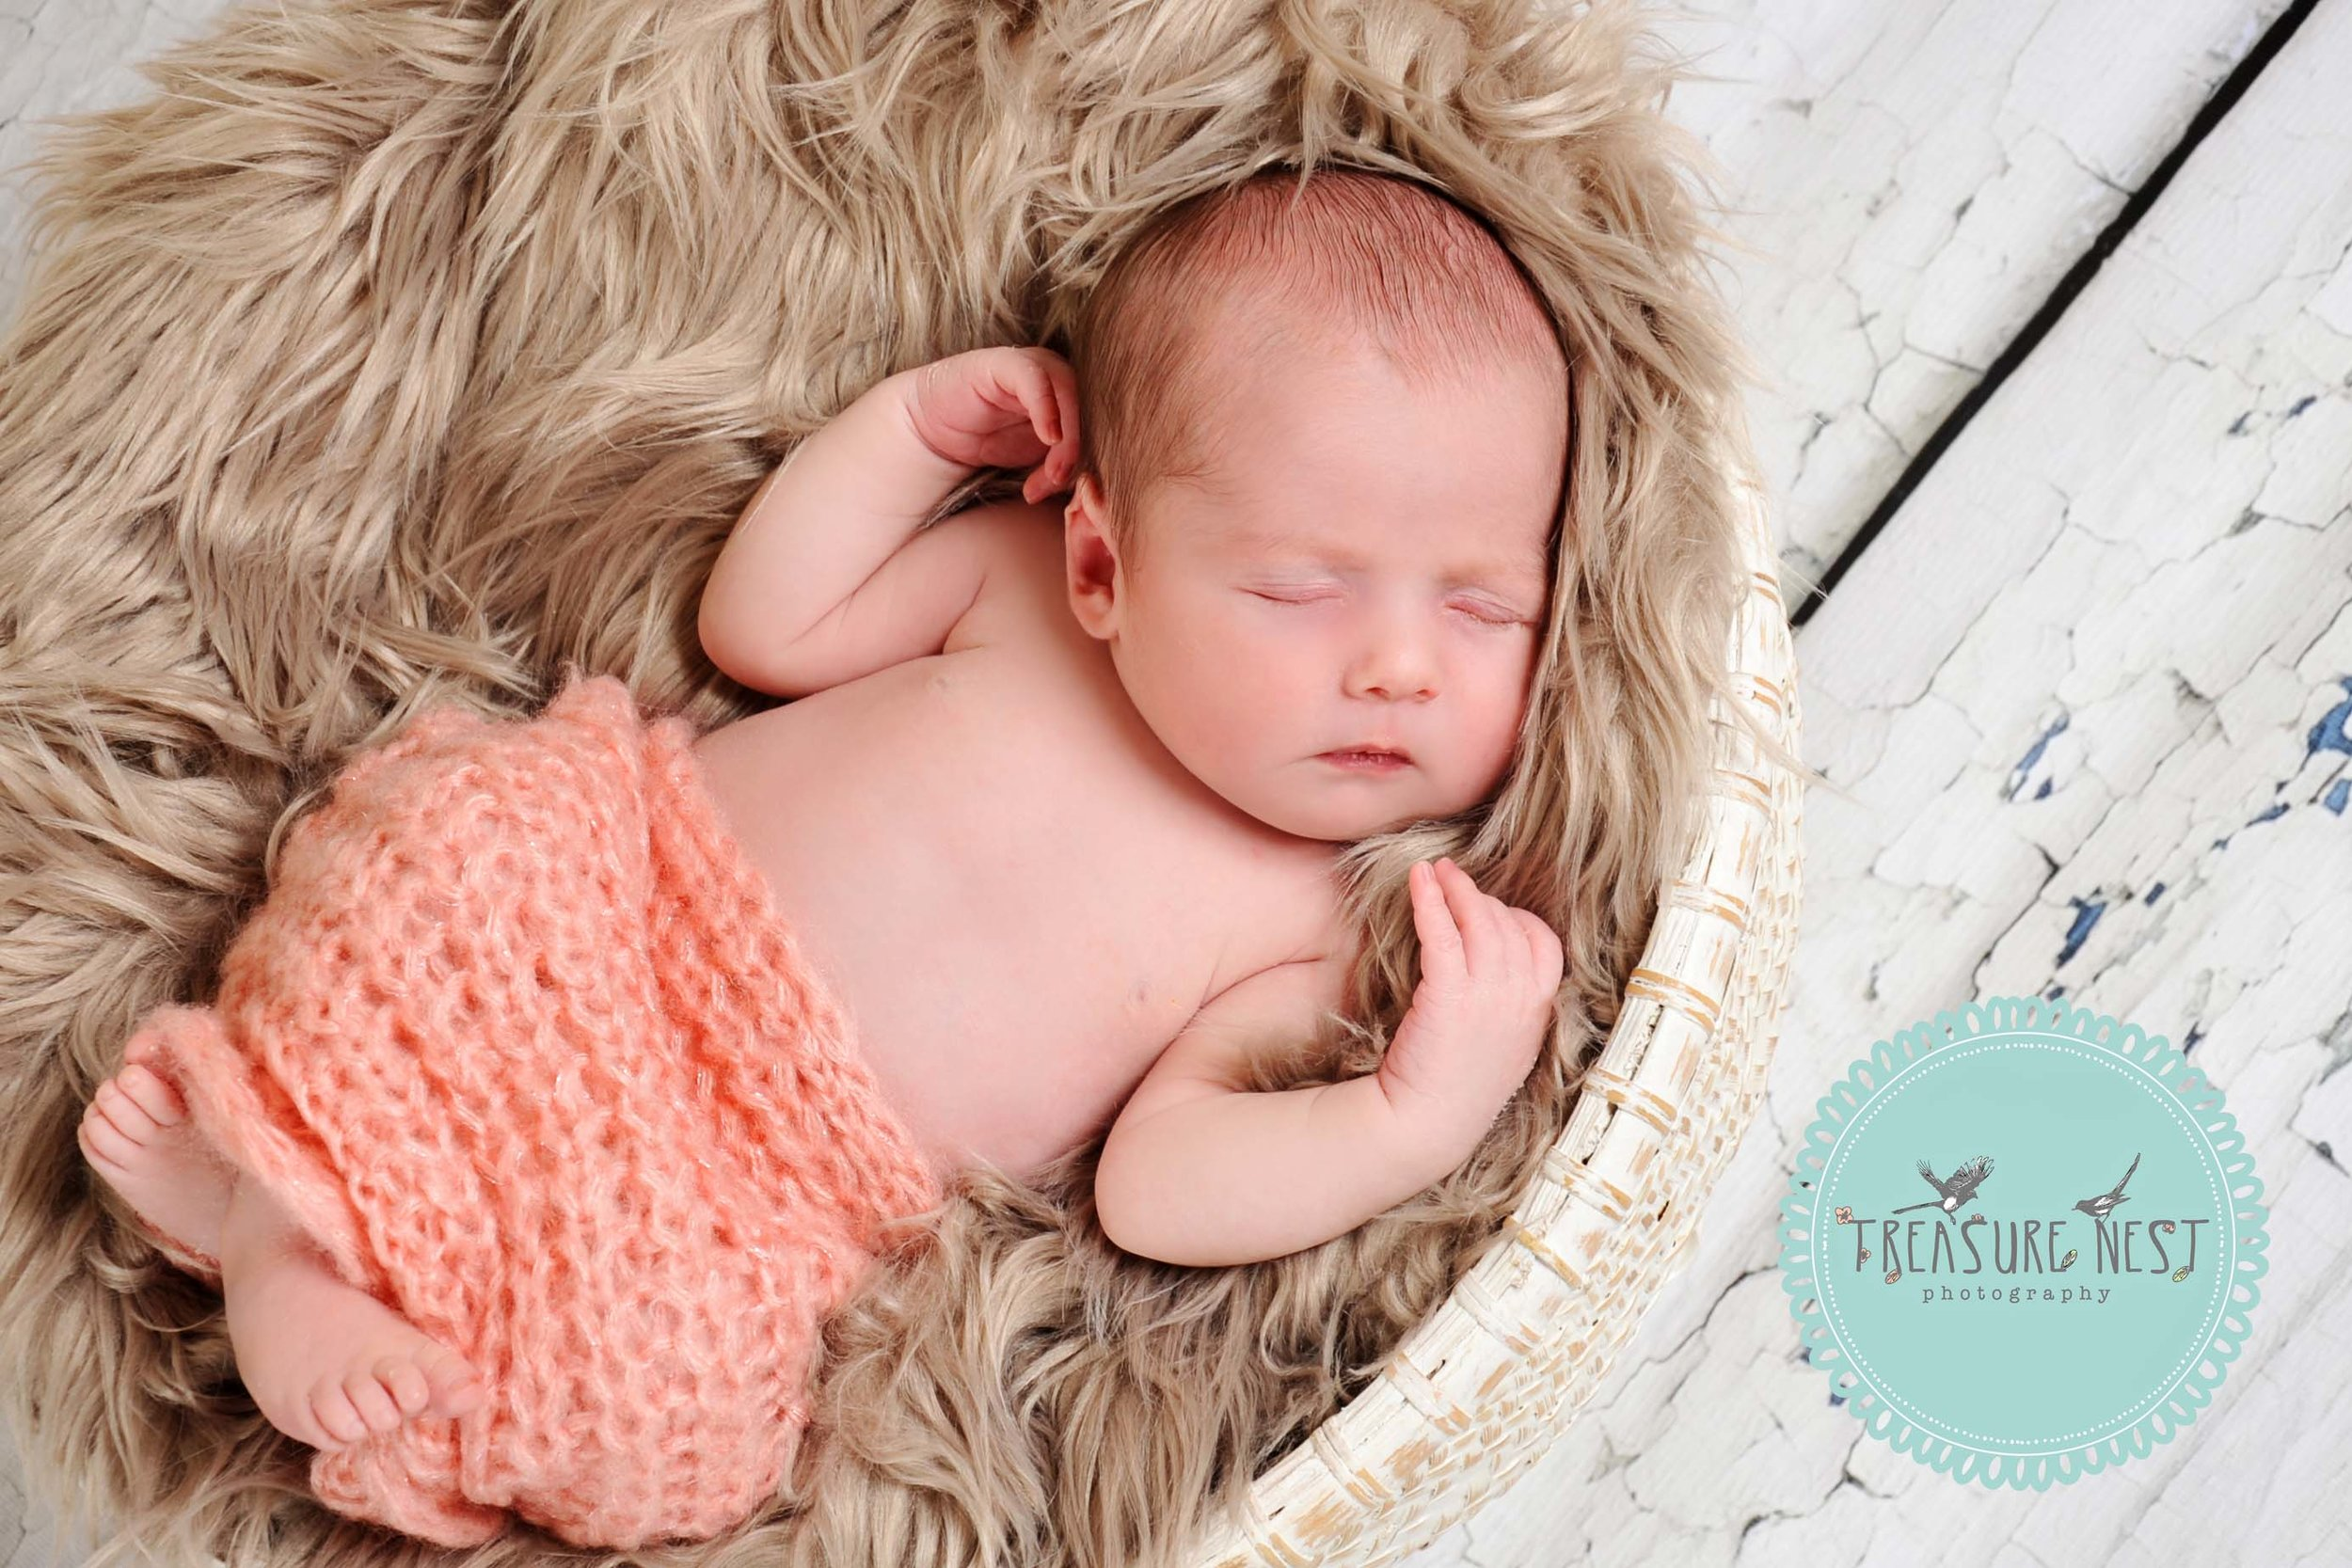 """Thoroughly recommend Laura, her photos of our newborn daughter are stunning and she is a lovely friendly lady to boot!""    Hayley Townshend"